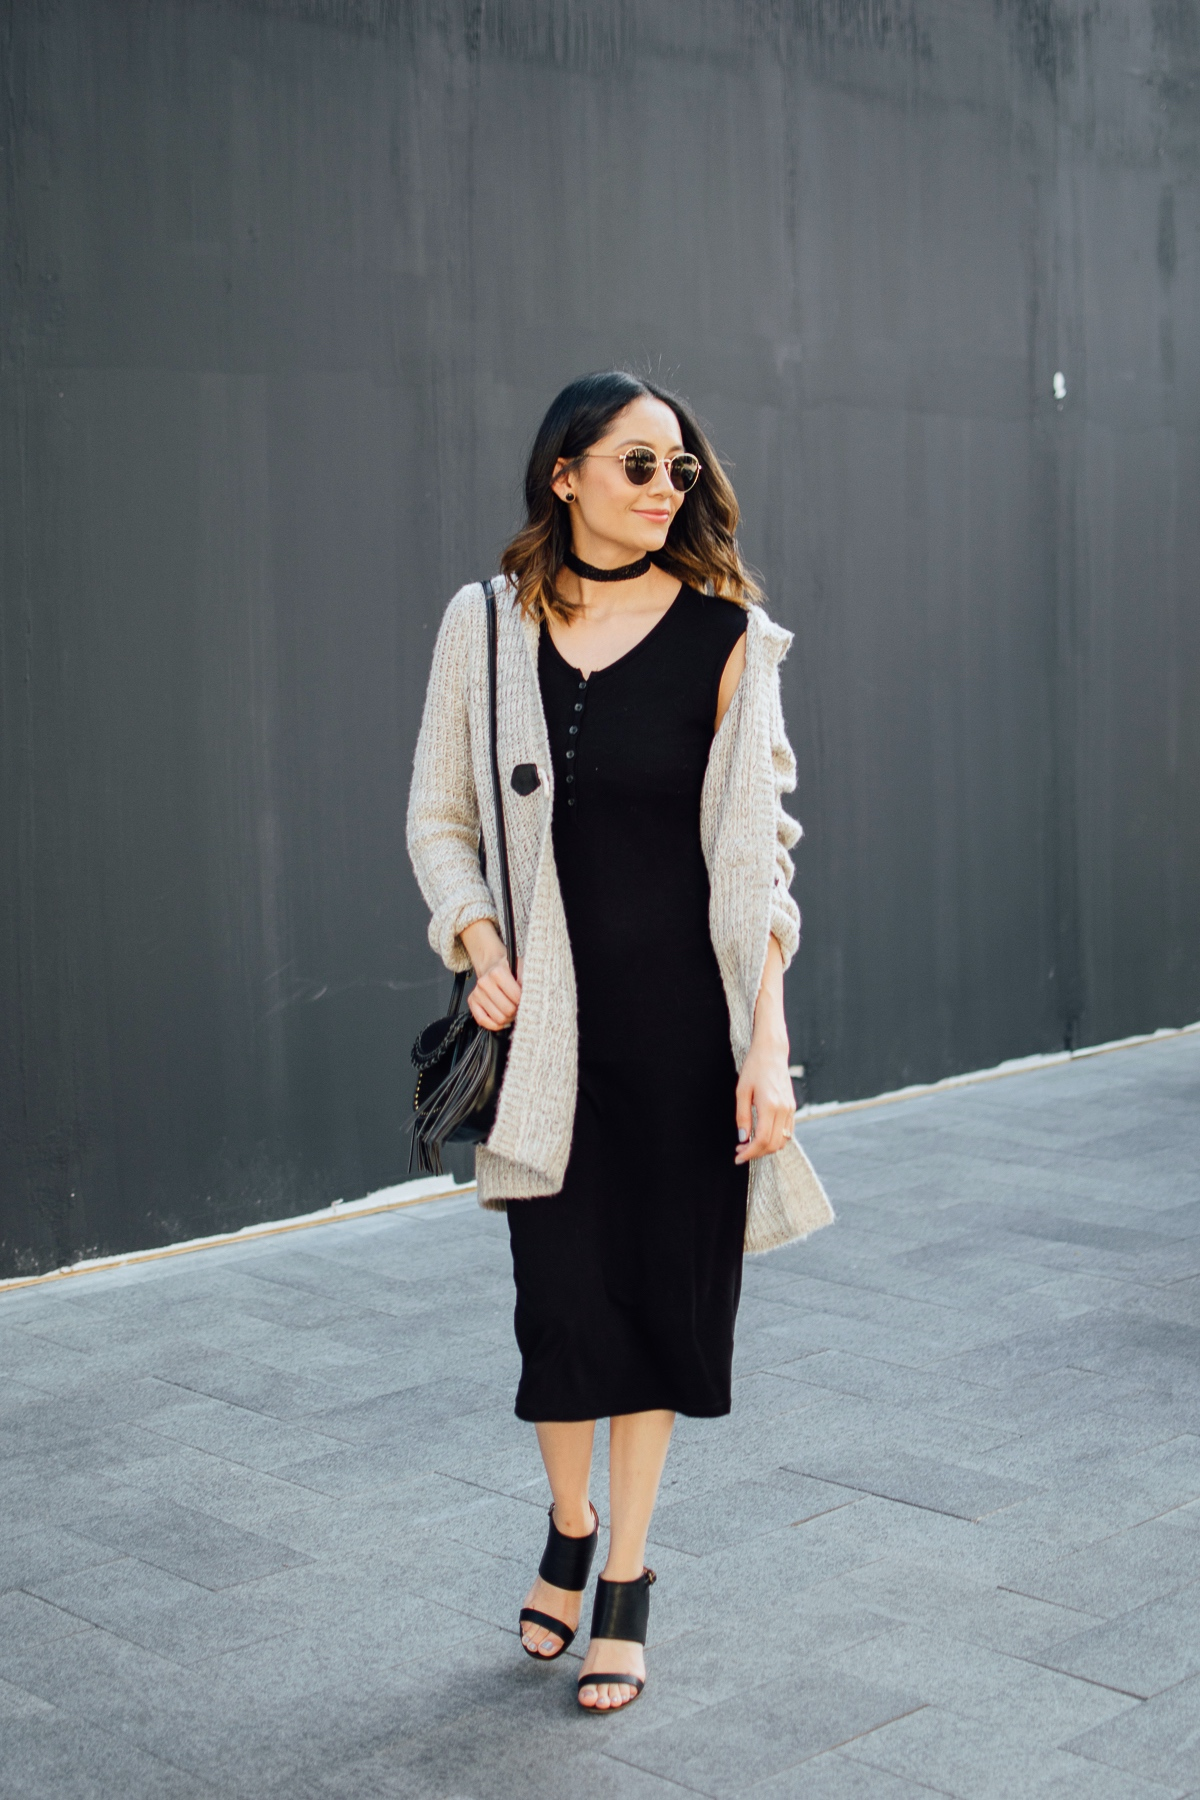 Style blogger Lilly Beltran wearing a casual fall outfit with a midi dress, beige cardigan and velvet choker